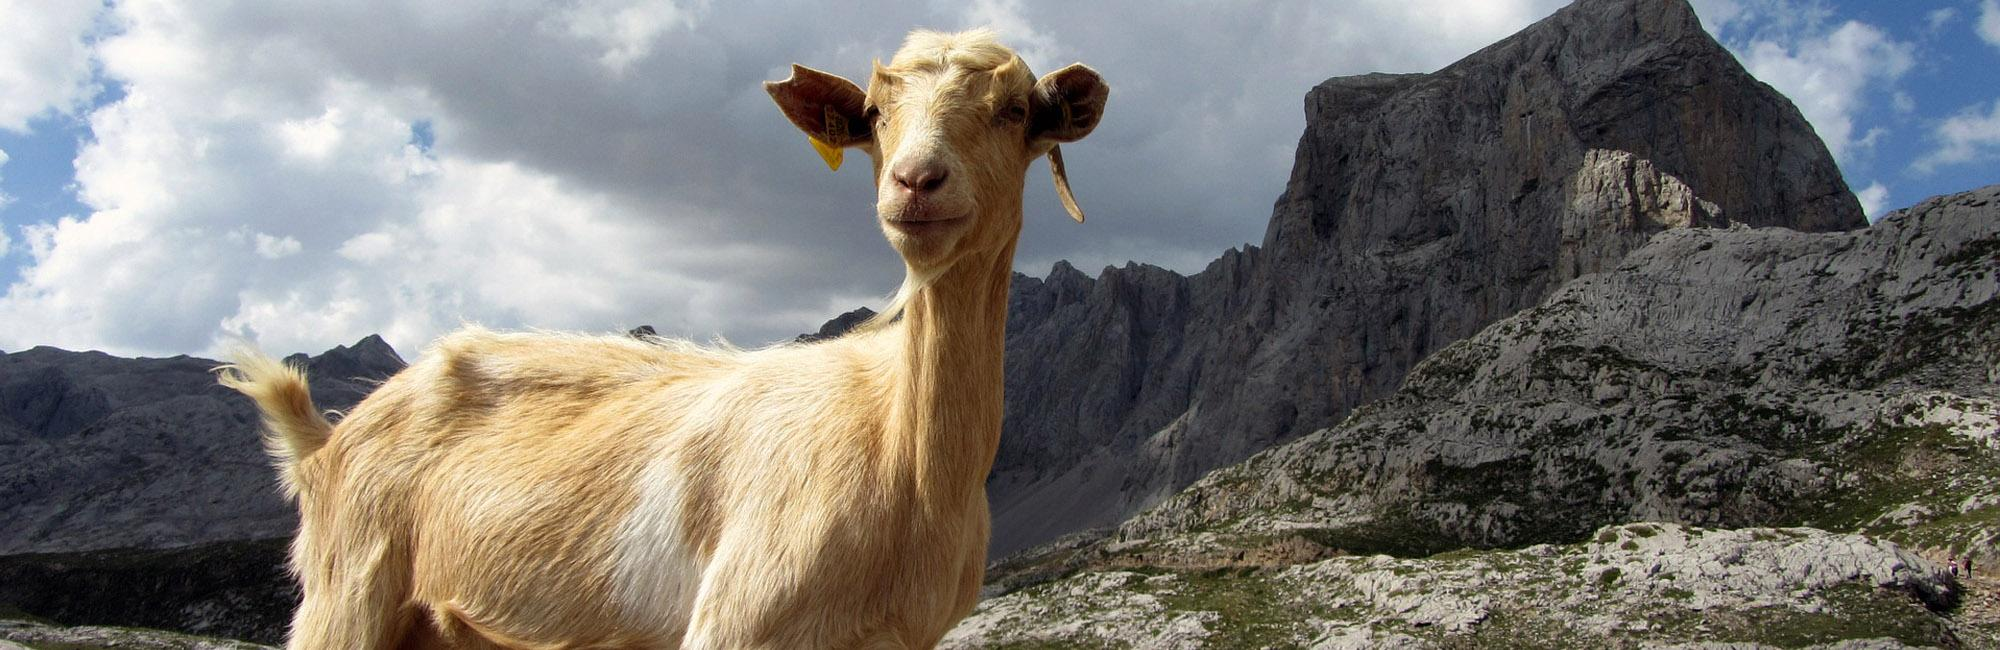 Goat in Picos de Europa National Park